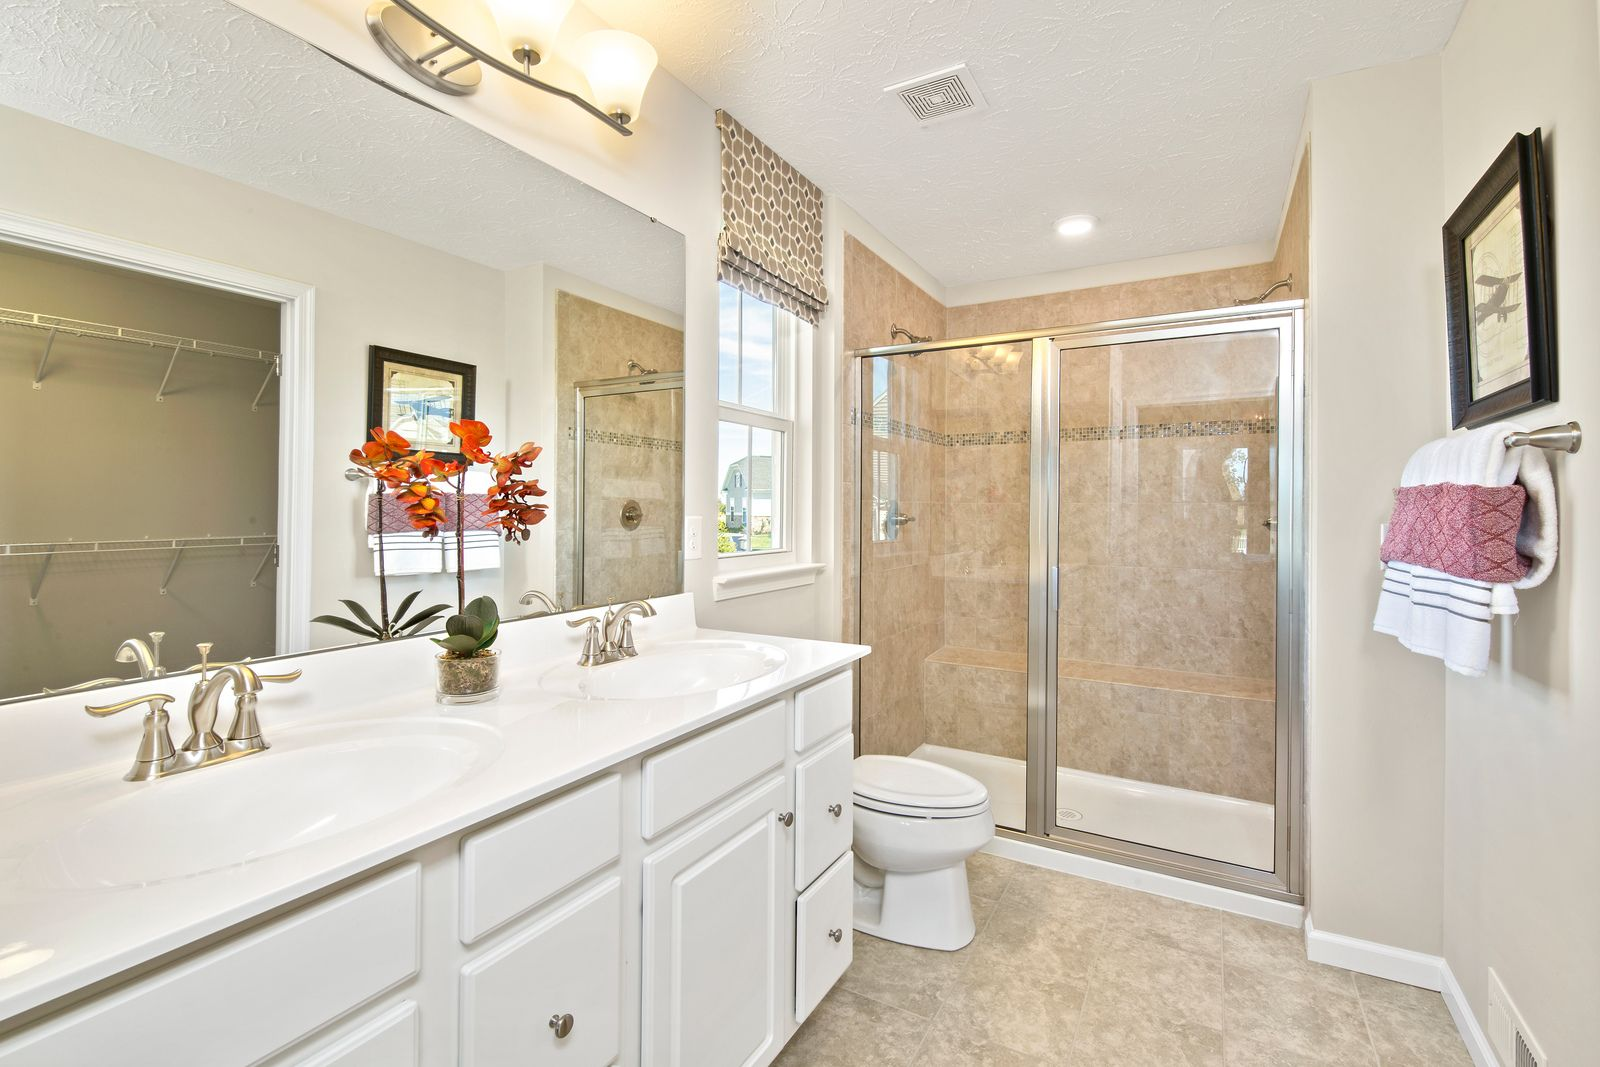 Bathroom featured in the Aviano By Ryan Homes in Cleveland, OH